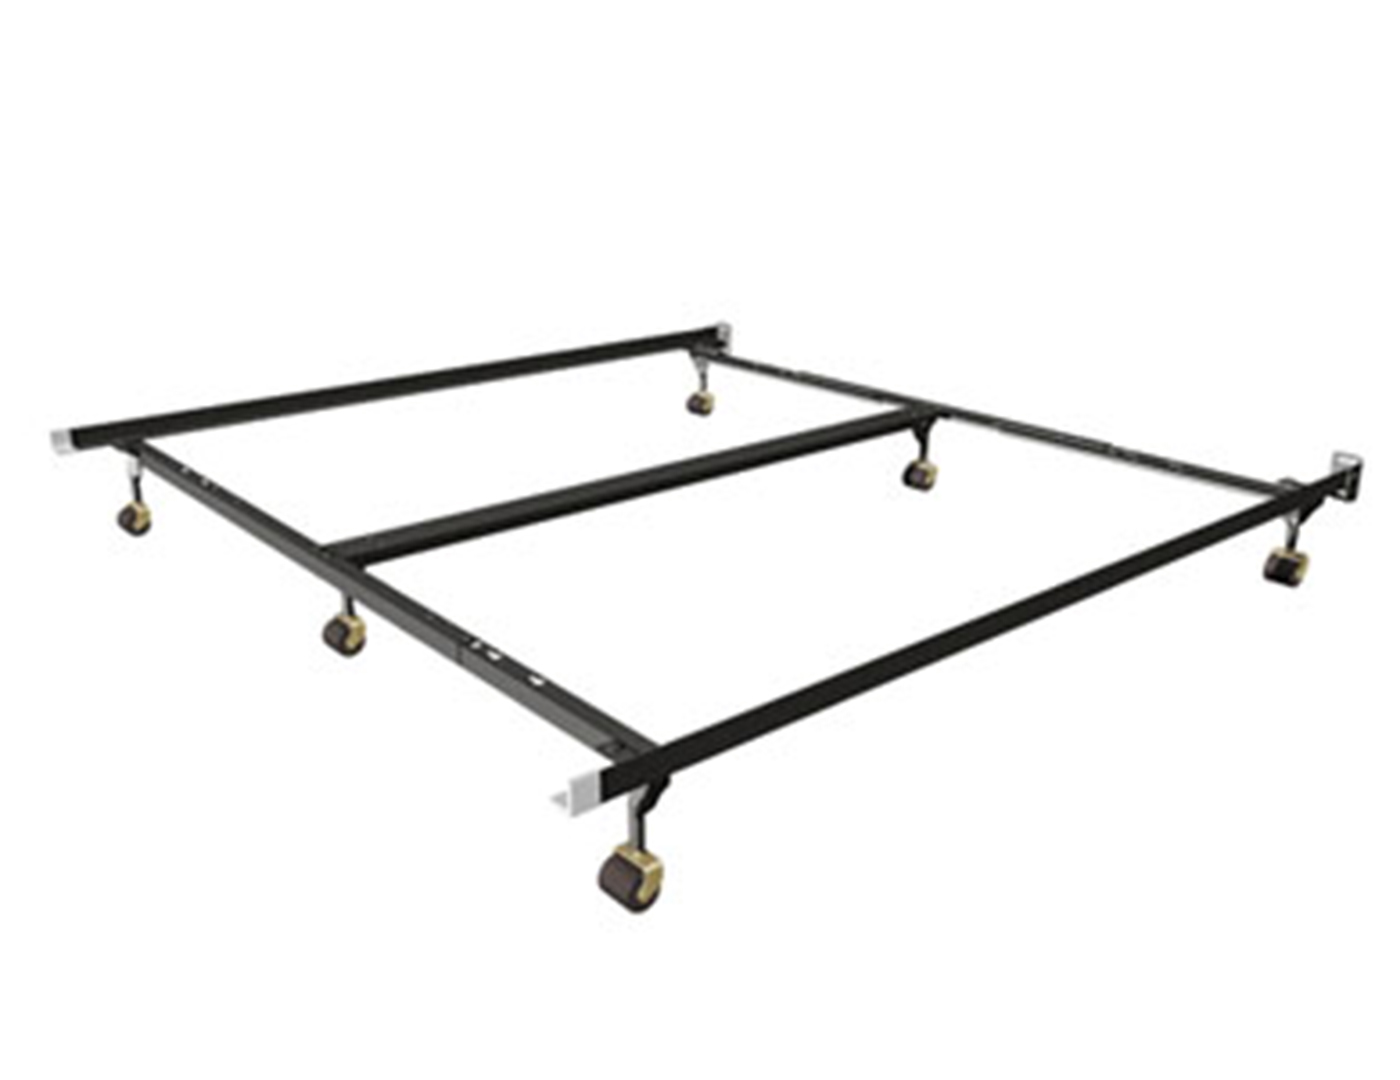 Insta-Lock King/Cal. King Bed Frame